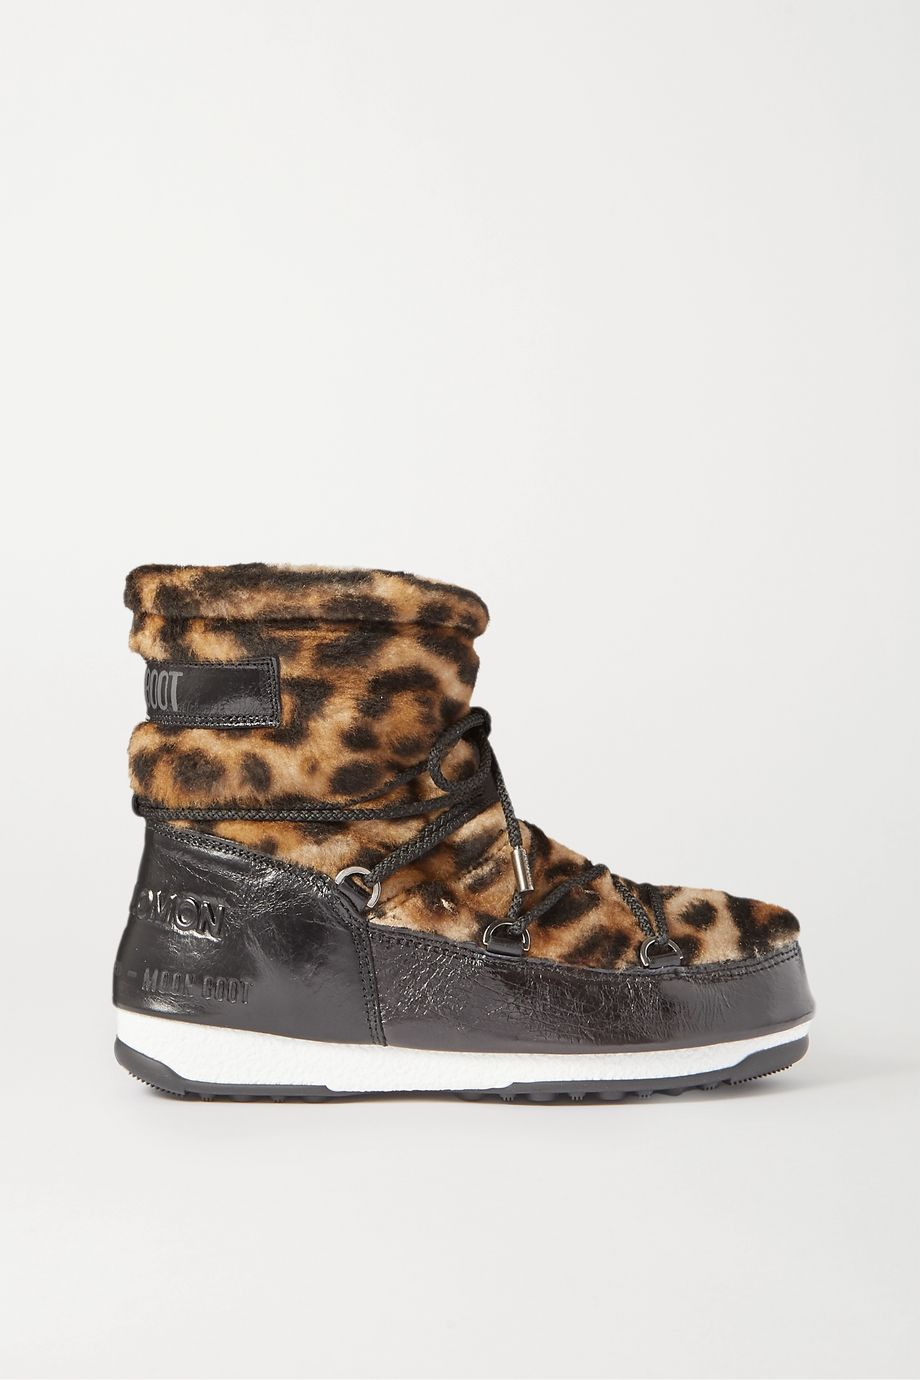 Yves Salomon + Moon Boot leopard-print shearling and patent-leather snow boots